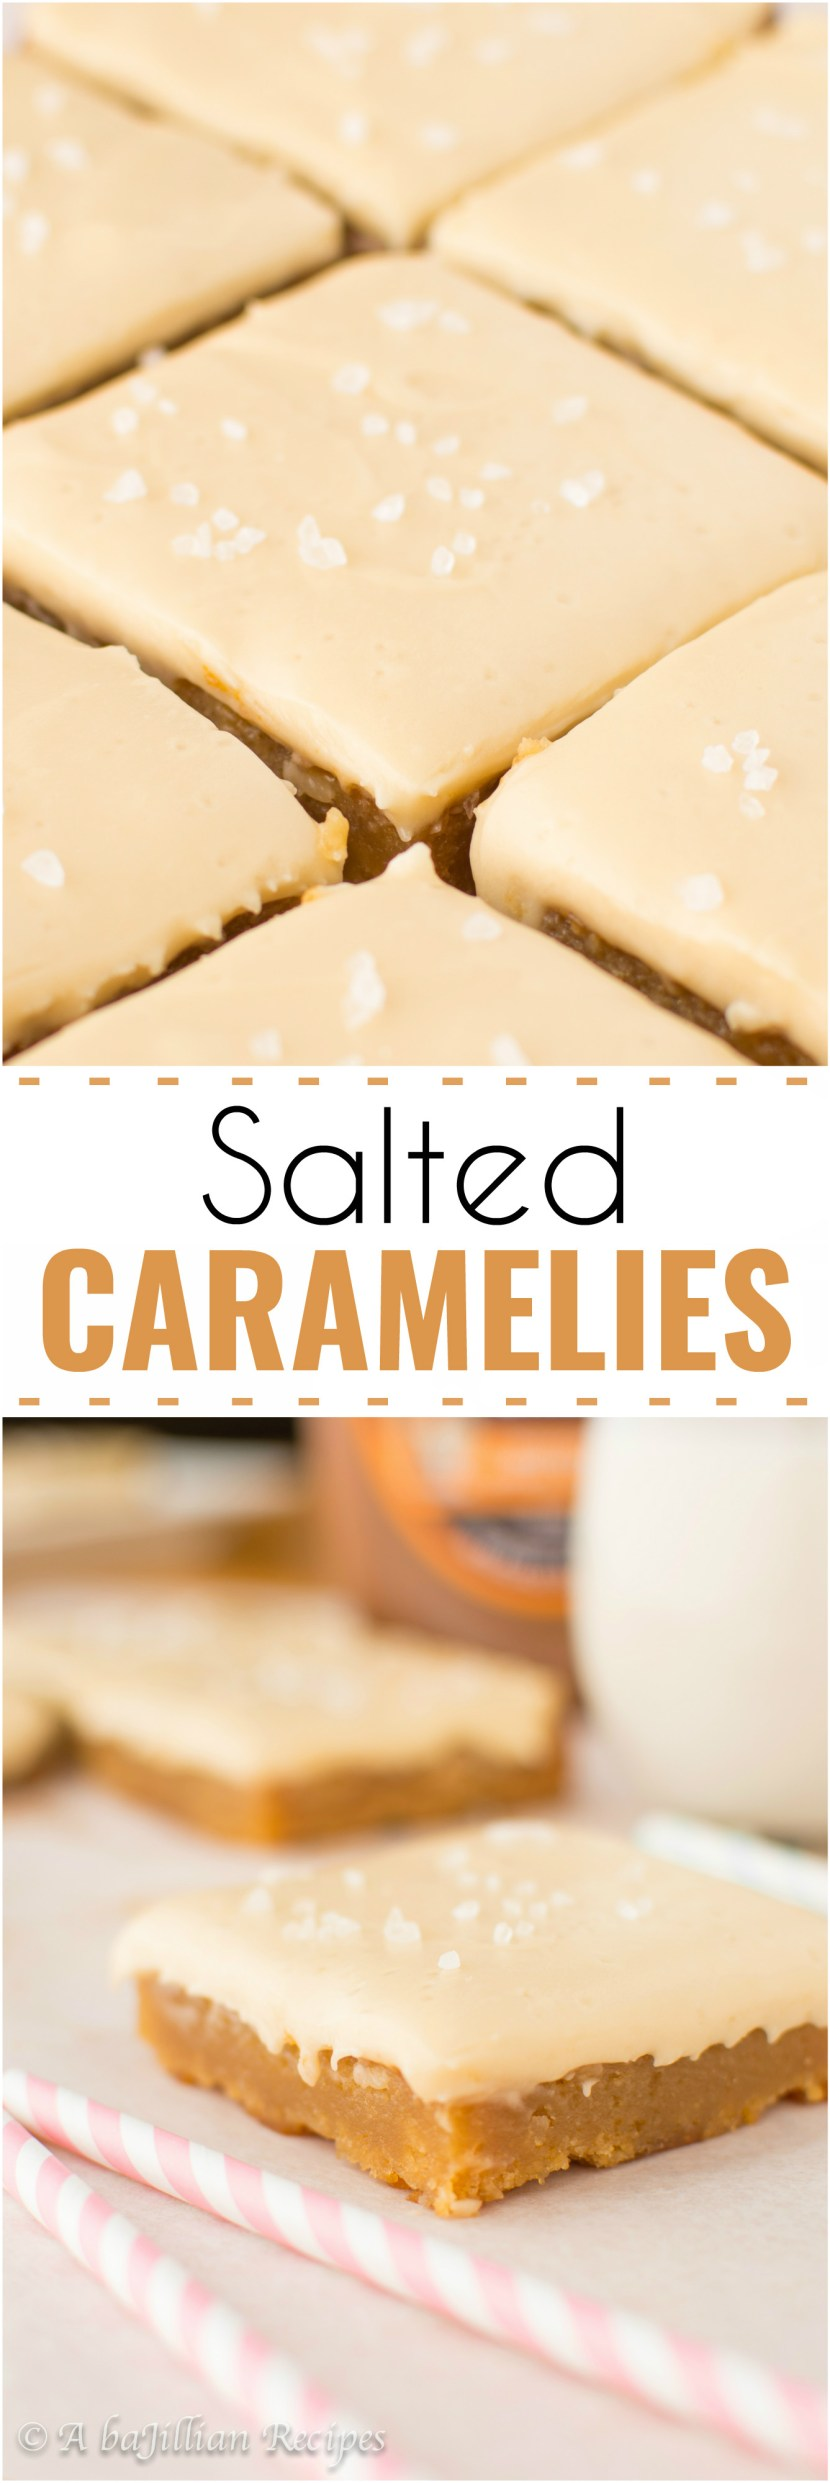 Salted-Caramelies-abajillianrecipes